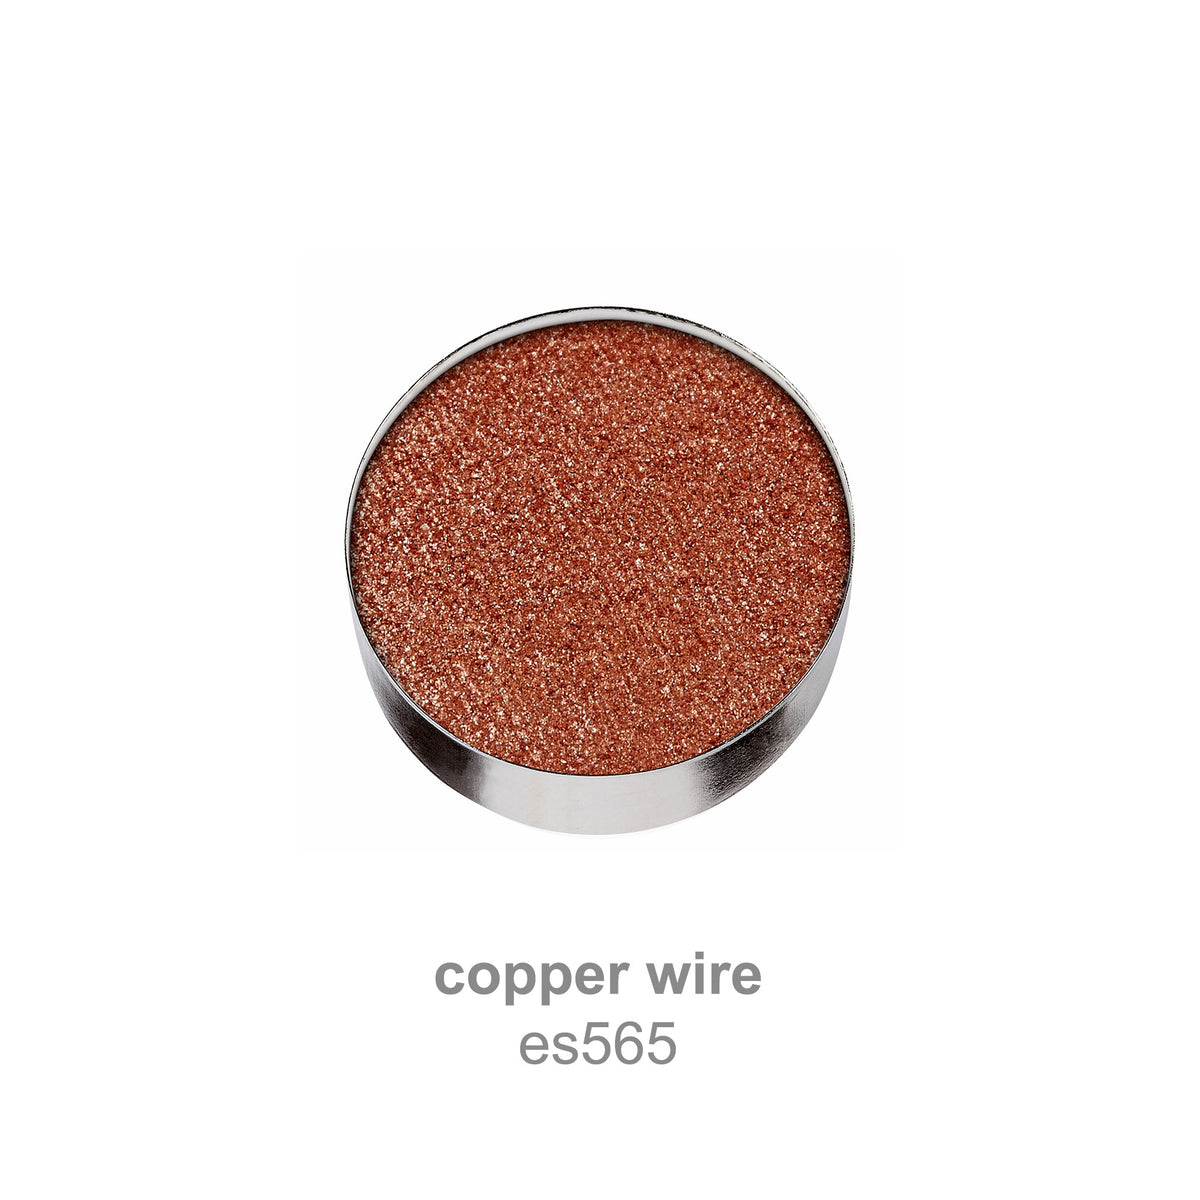 copper wire (es565)